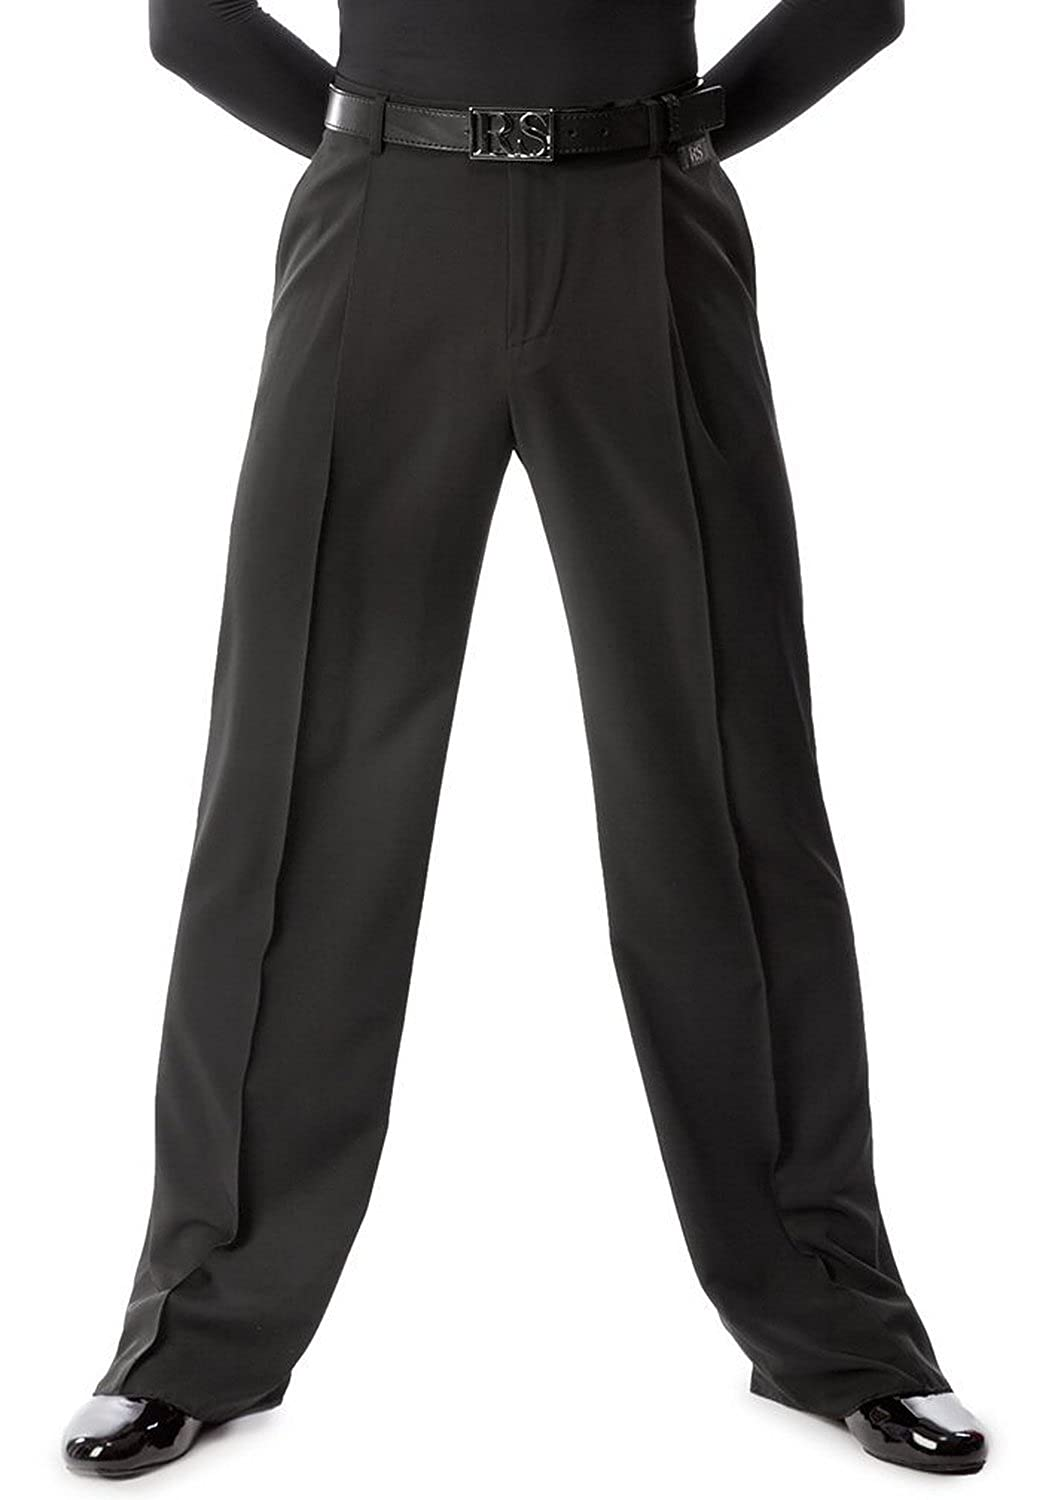 RS Atelier PANTS メンズ  50(34.5 inches)